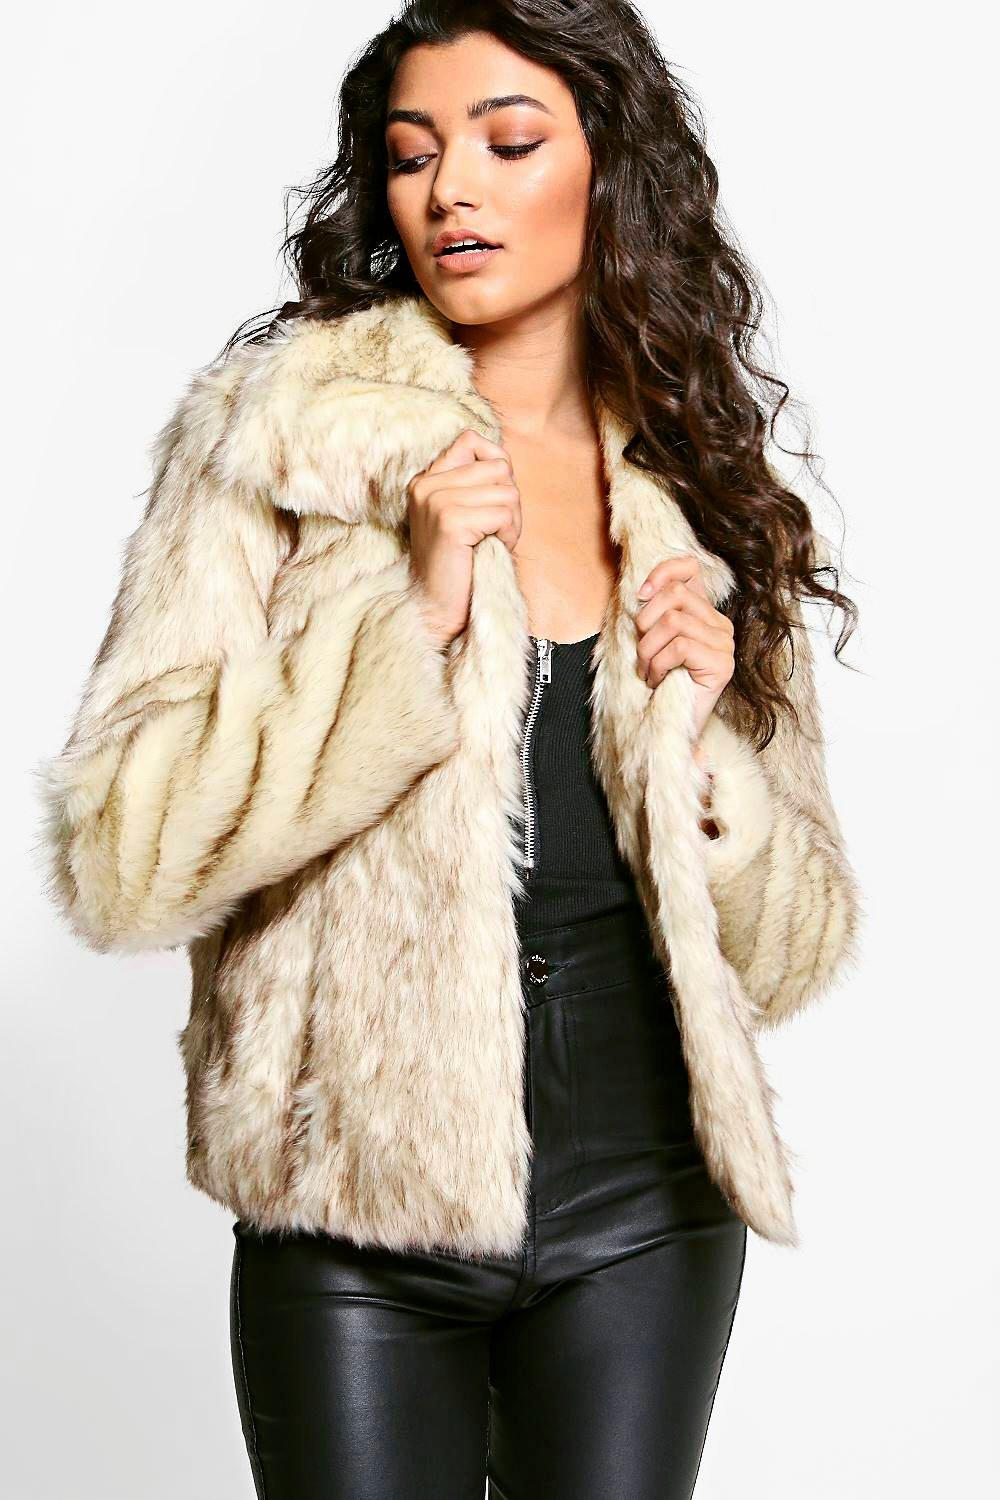 811c1b5f4f3 Womens Cream Boutique Jasmine Vintage Faux Fur Coat. Hover to zoom